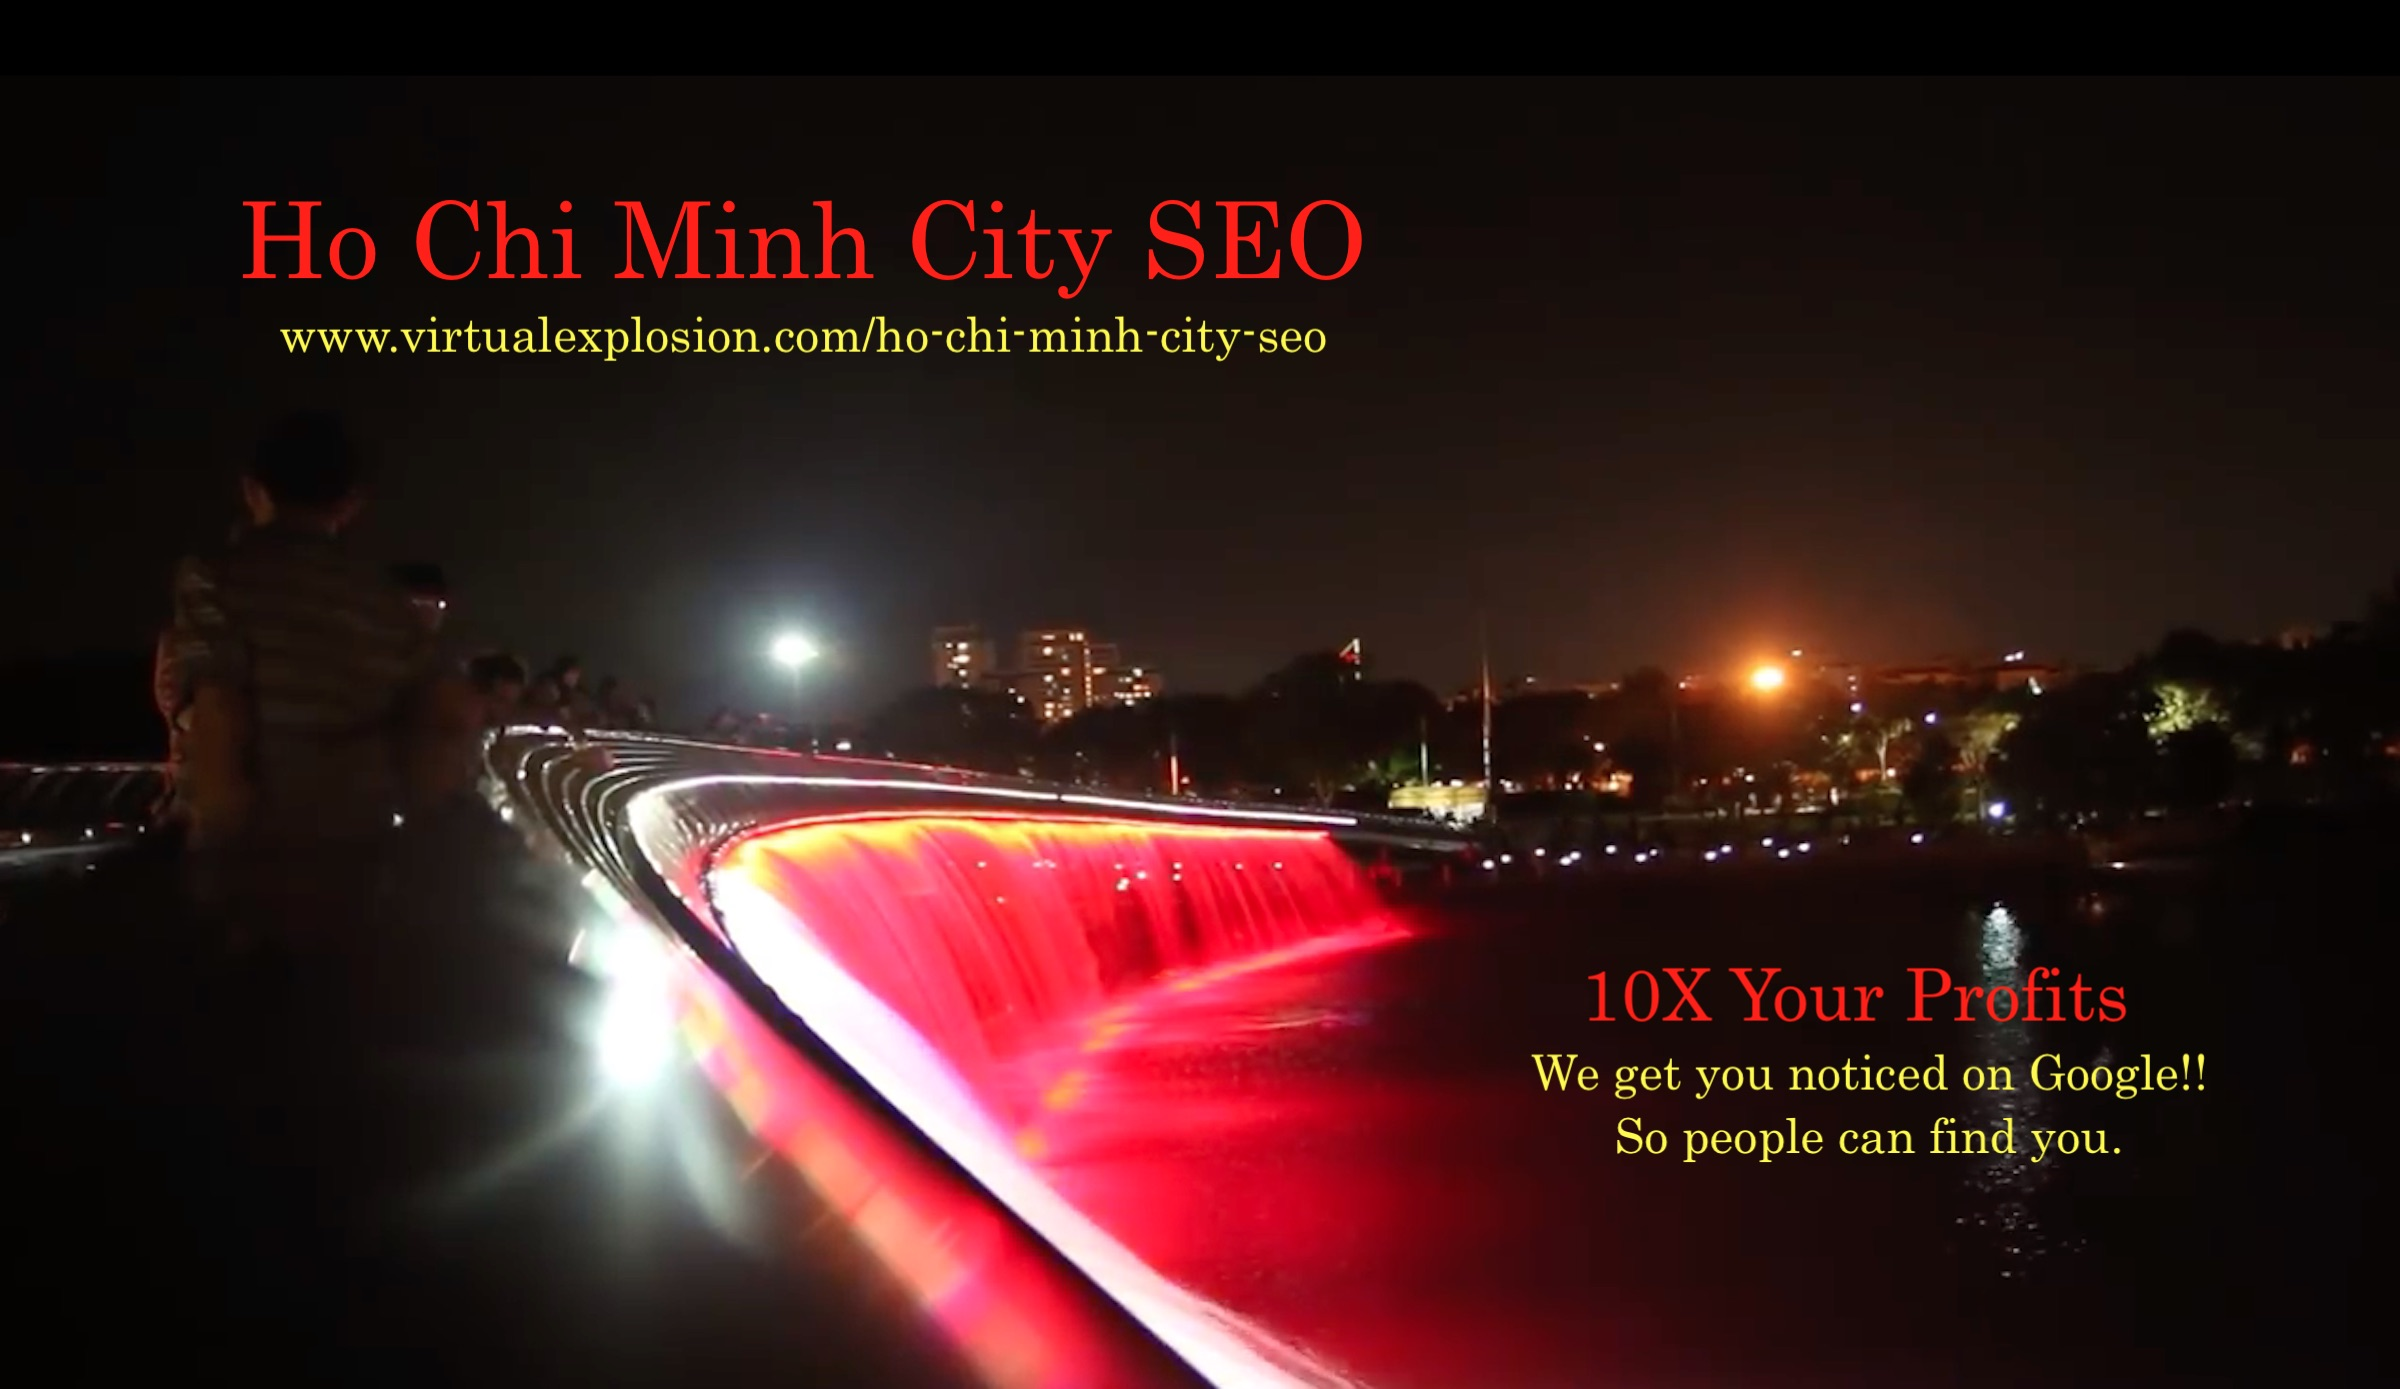 #1 Best SEO in Saigon Vietnam